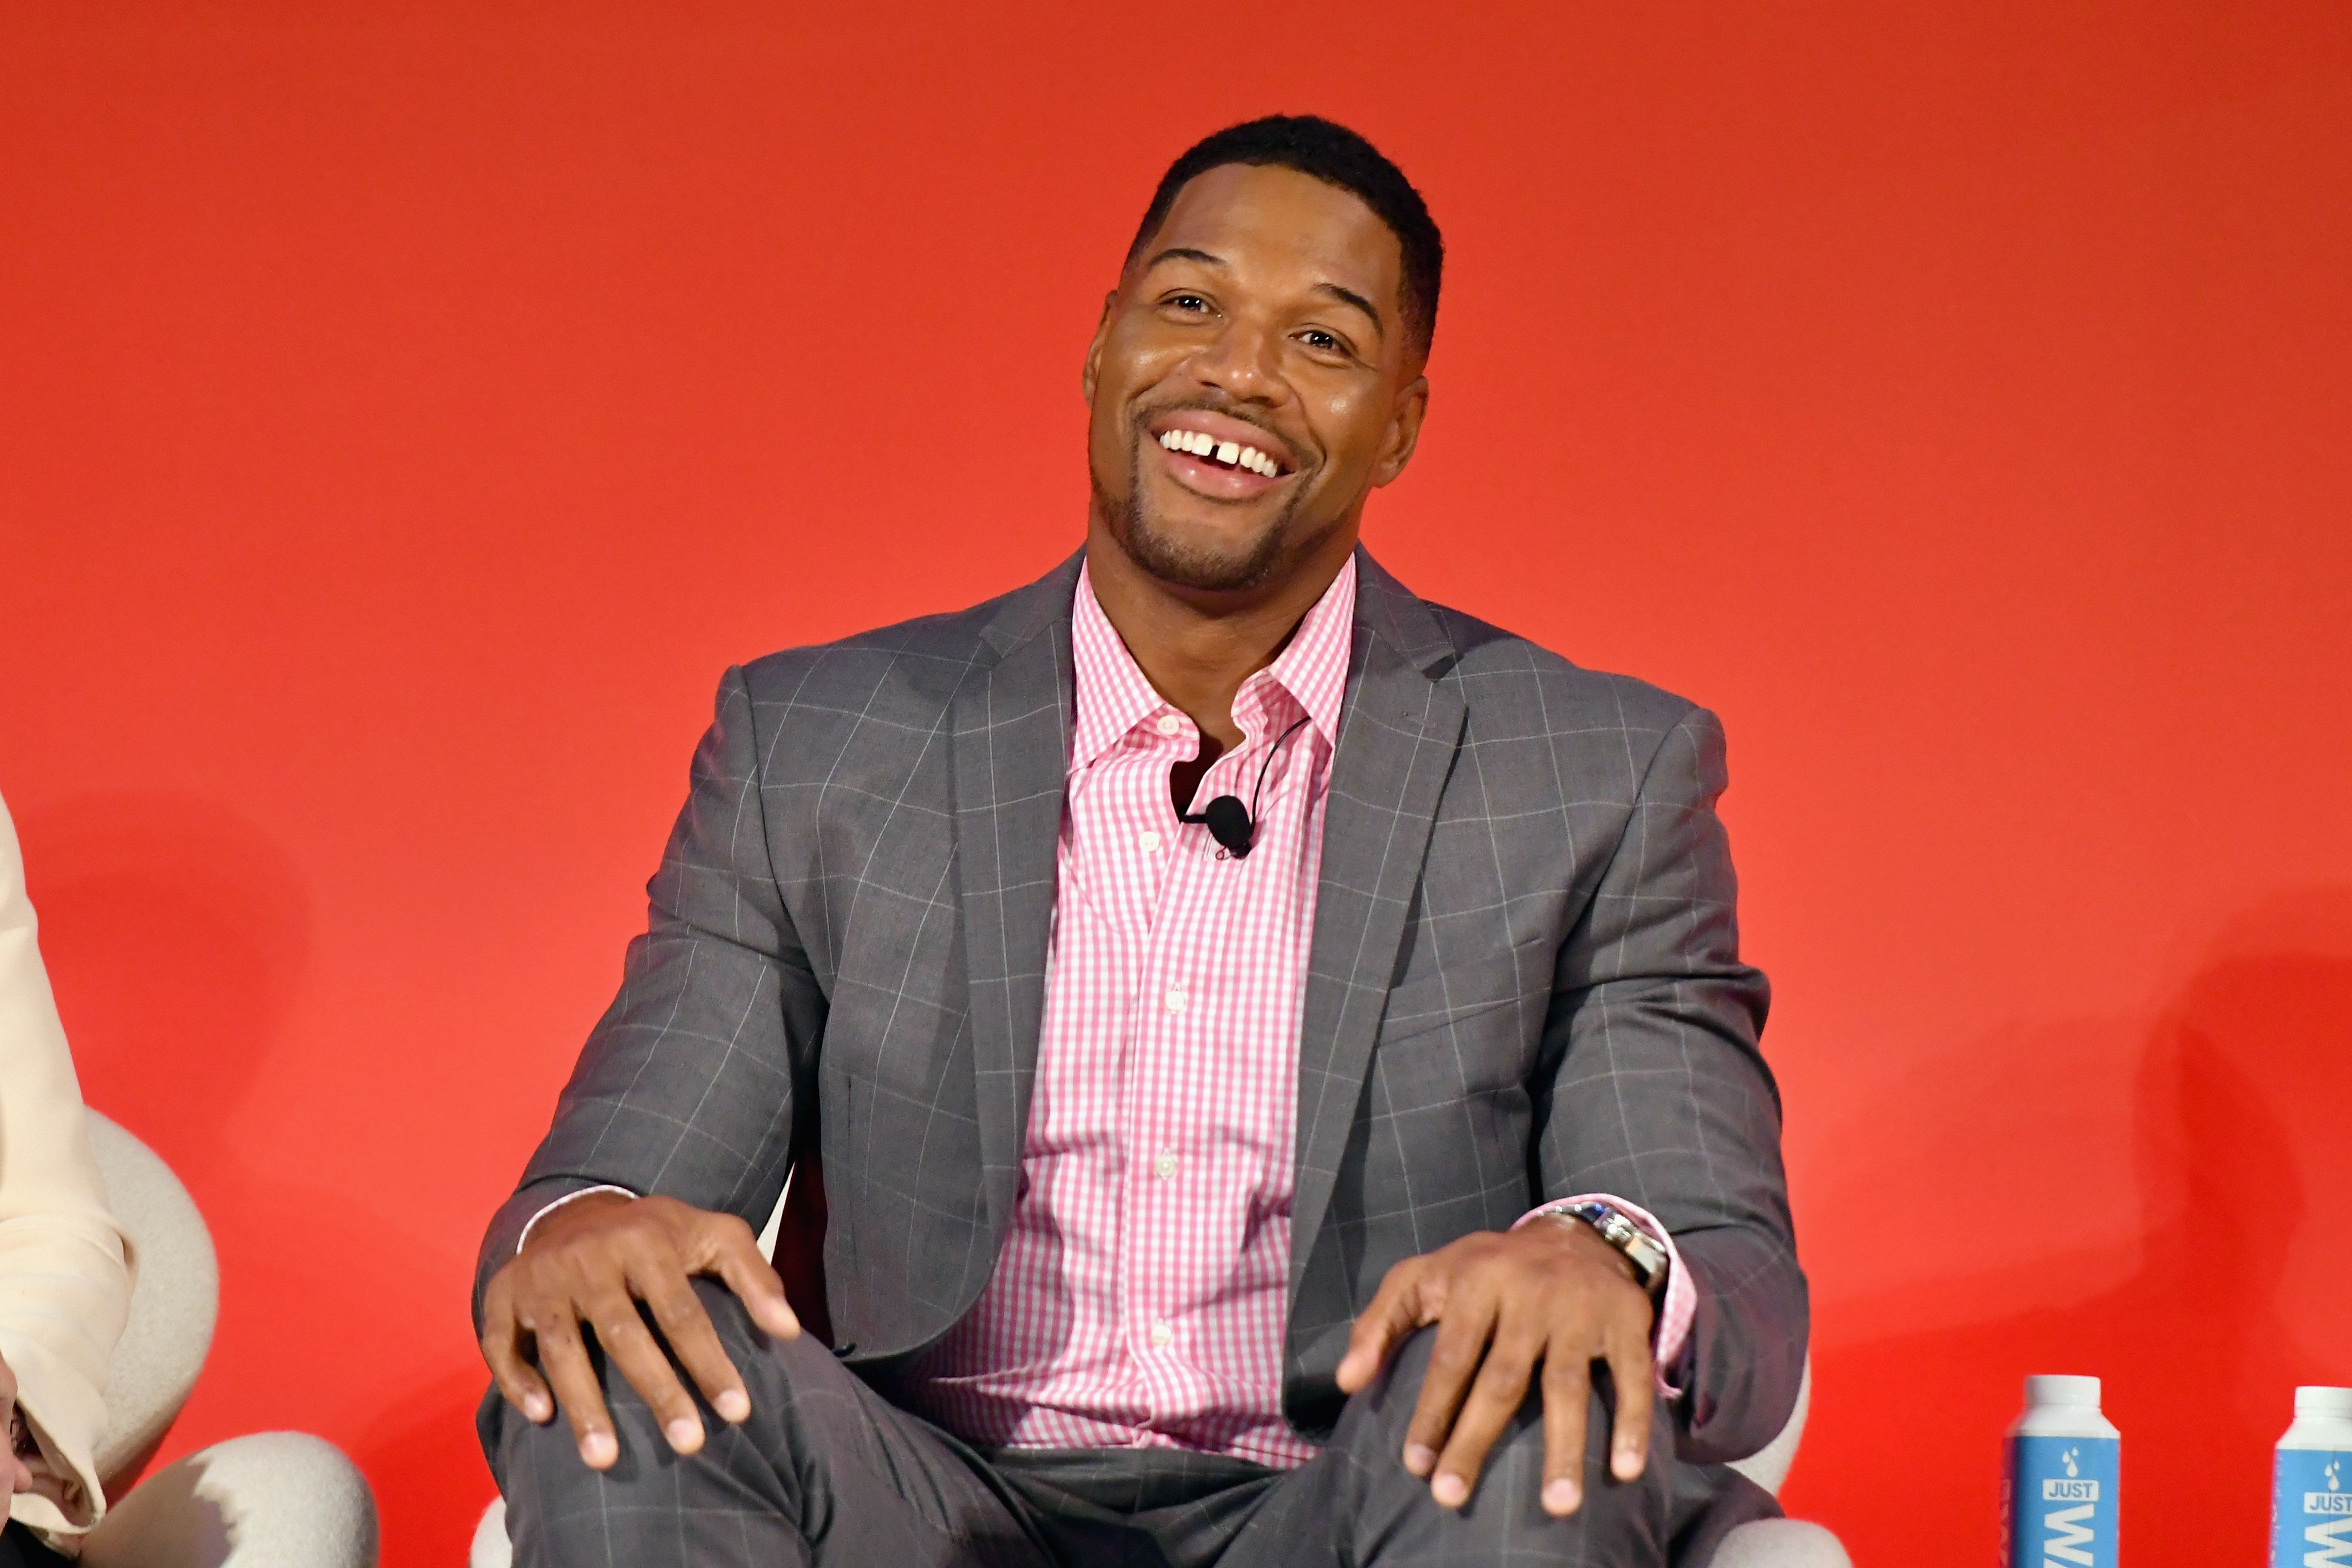 Michael Strahan speaks onstage at the Fox NFL Town Hall panel at The Town Hall during 2016 Advertising Week New York on September 28, 2016 in New York City. | Photo: Getty Images